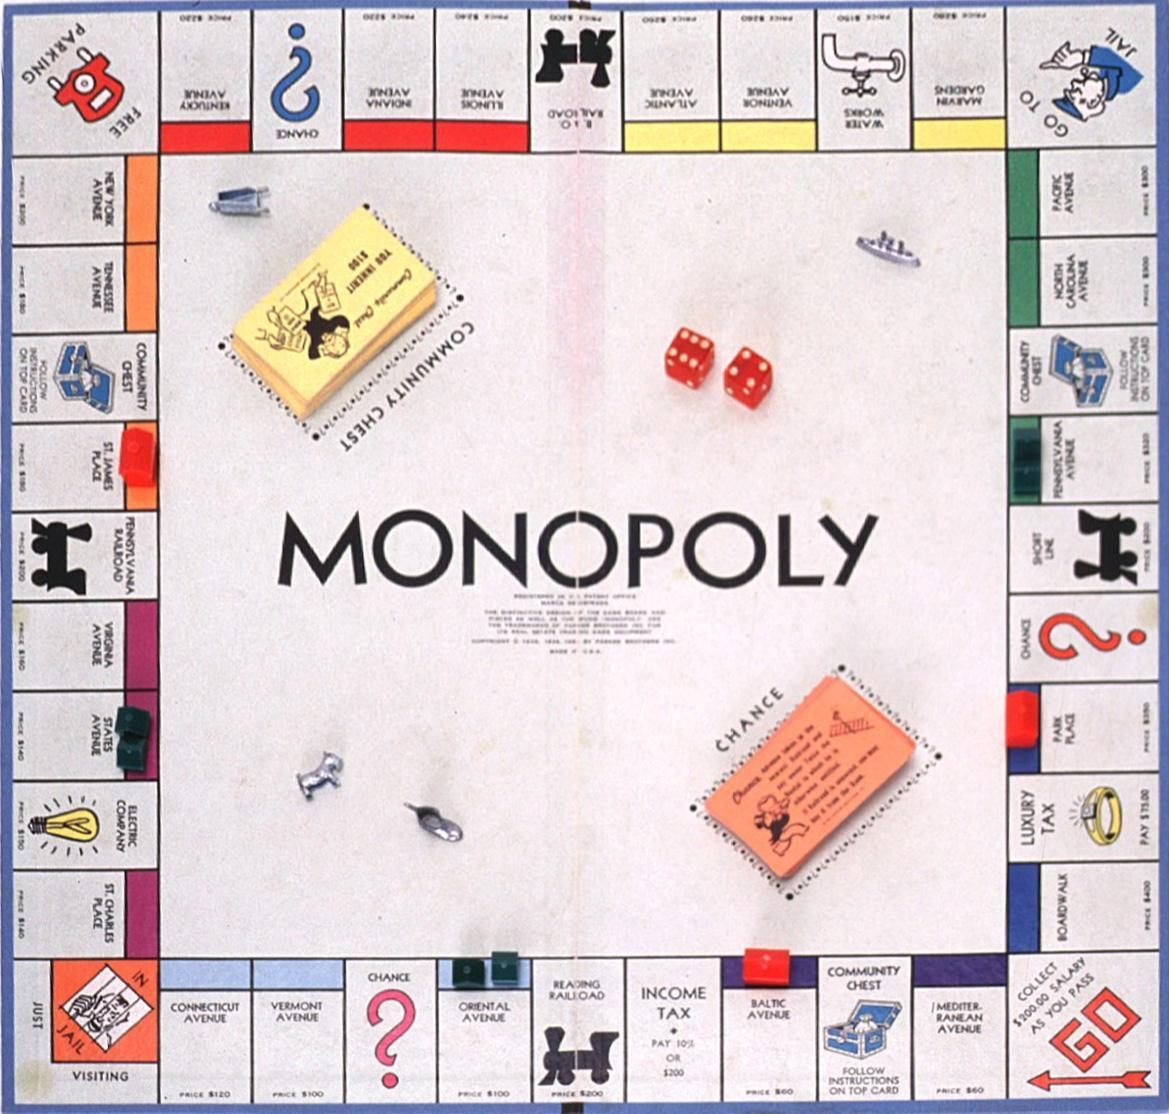 monopoly on facebook